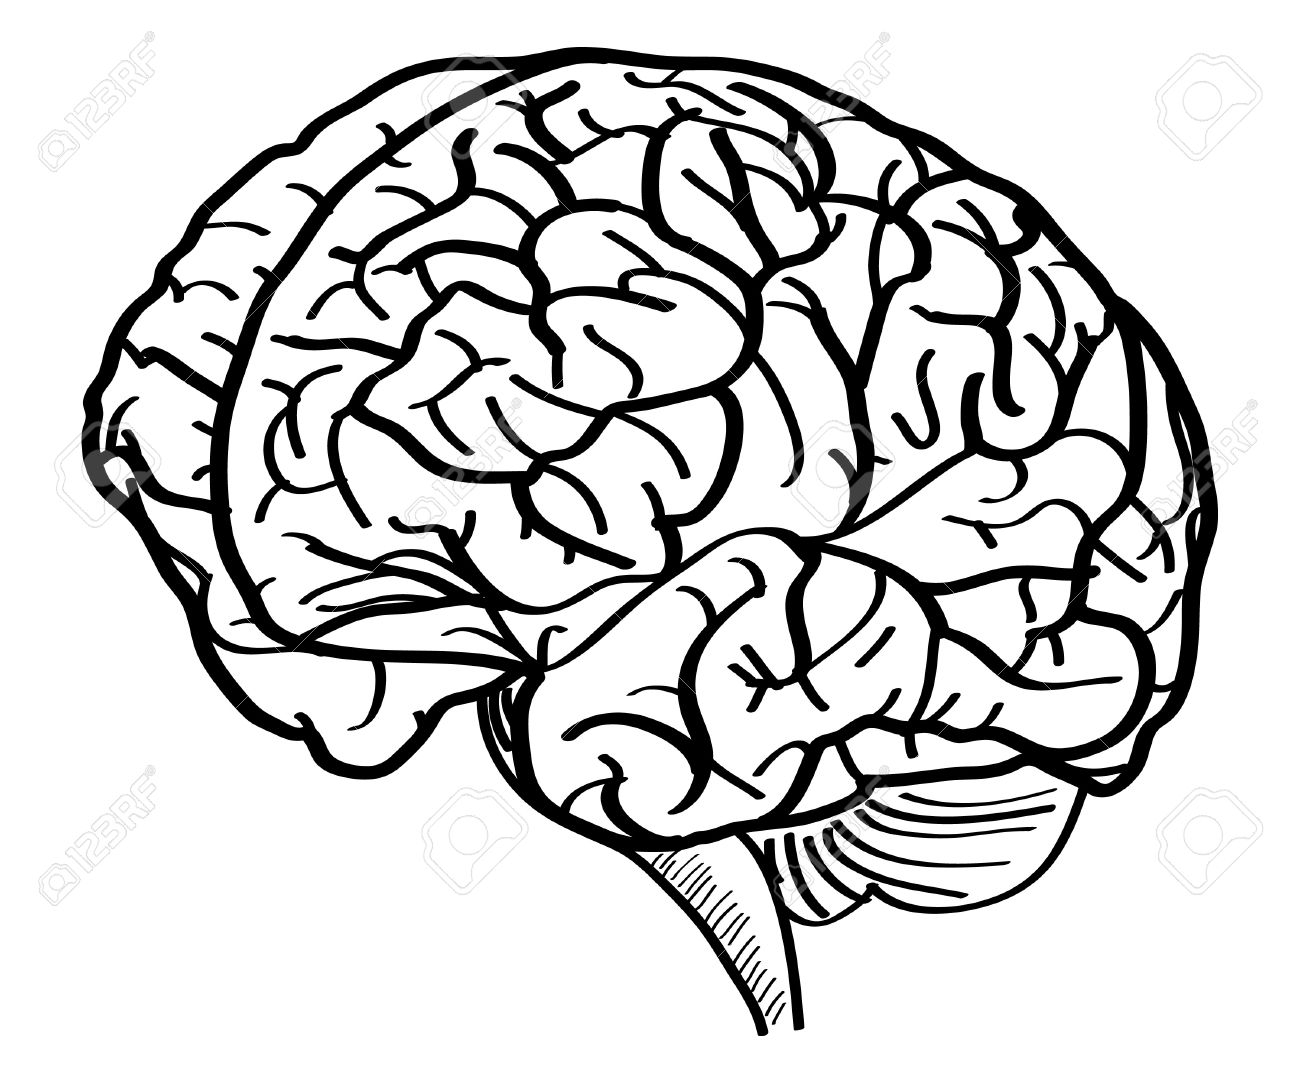 Line Drawing Brain : Brain outline clipart black and white clipground